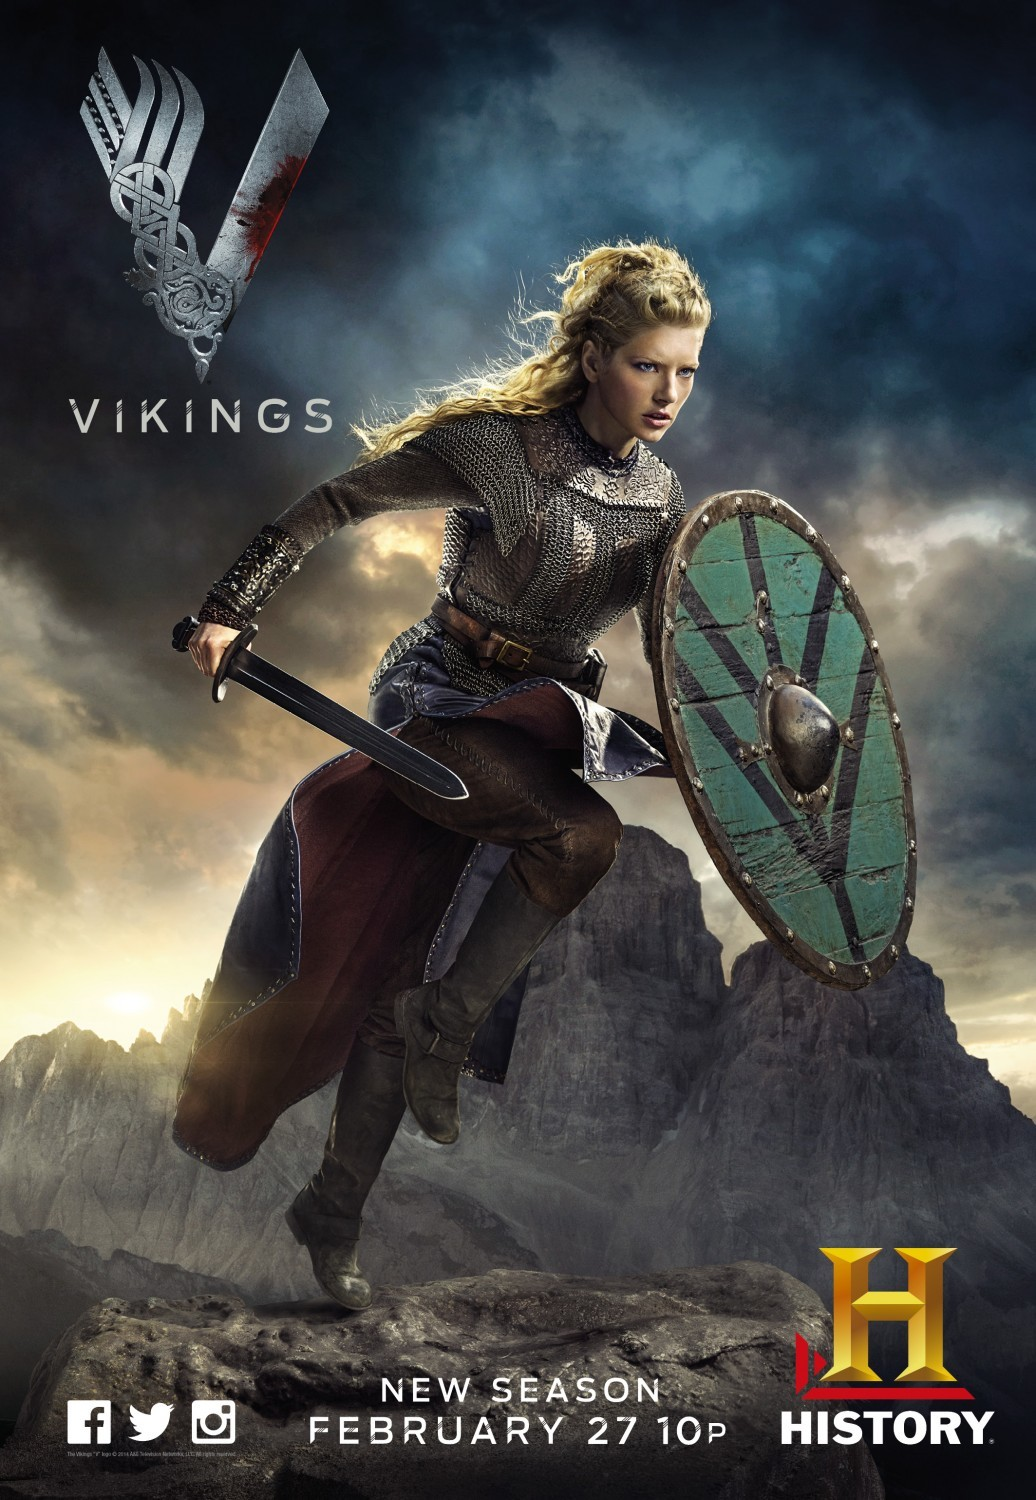 El megaPost de las series Vikings-tv-series-image-vikings-tv-series-36481651-1036-1500